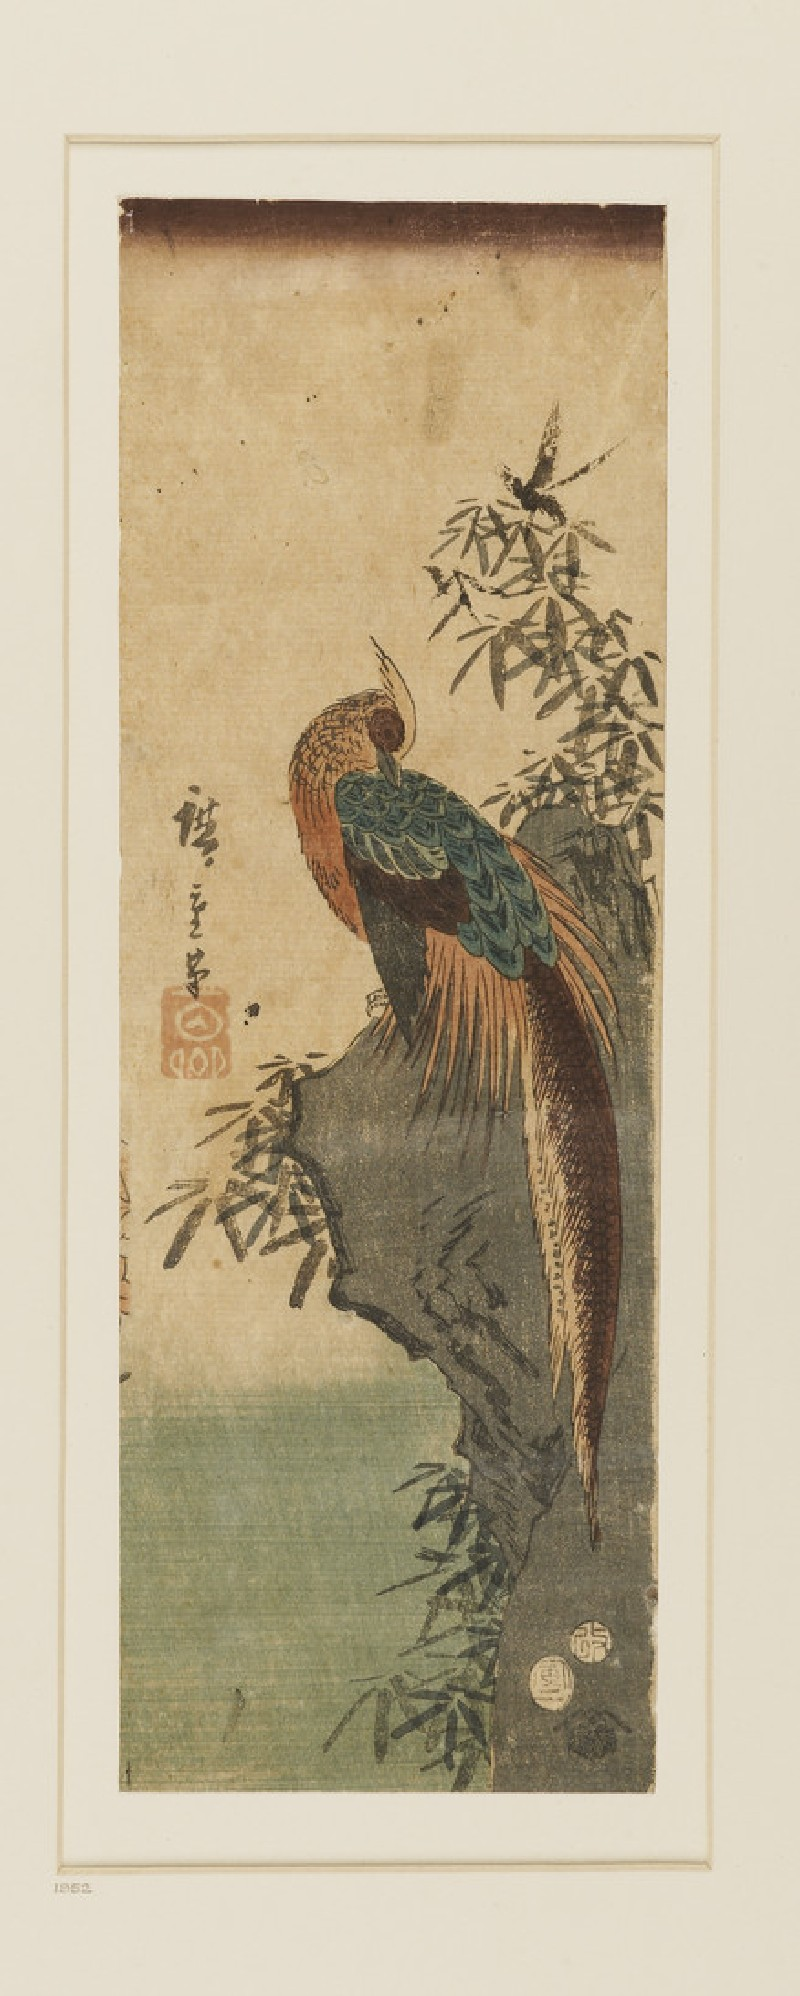 Golden pheasant on a rock (EAX.4397, front          )